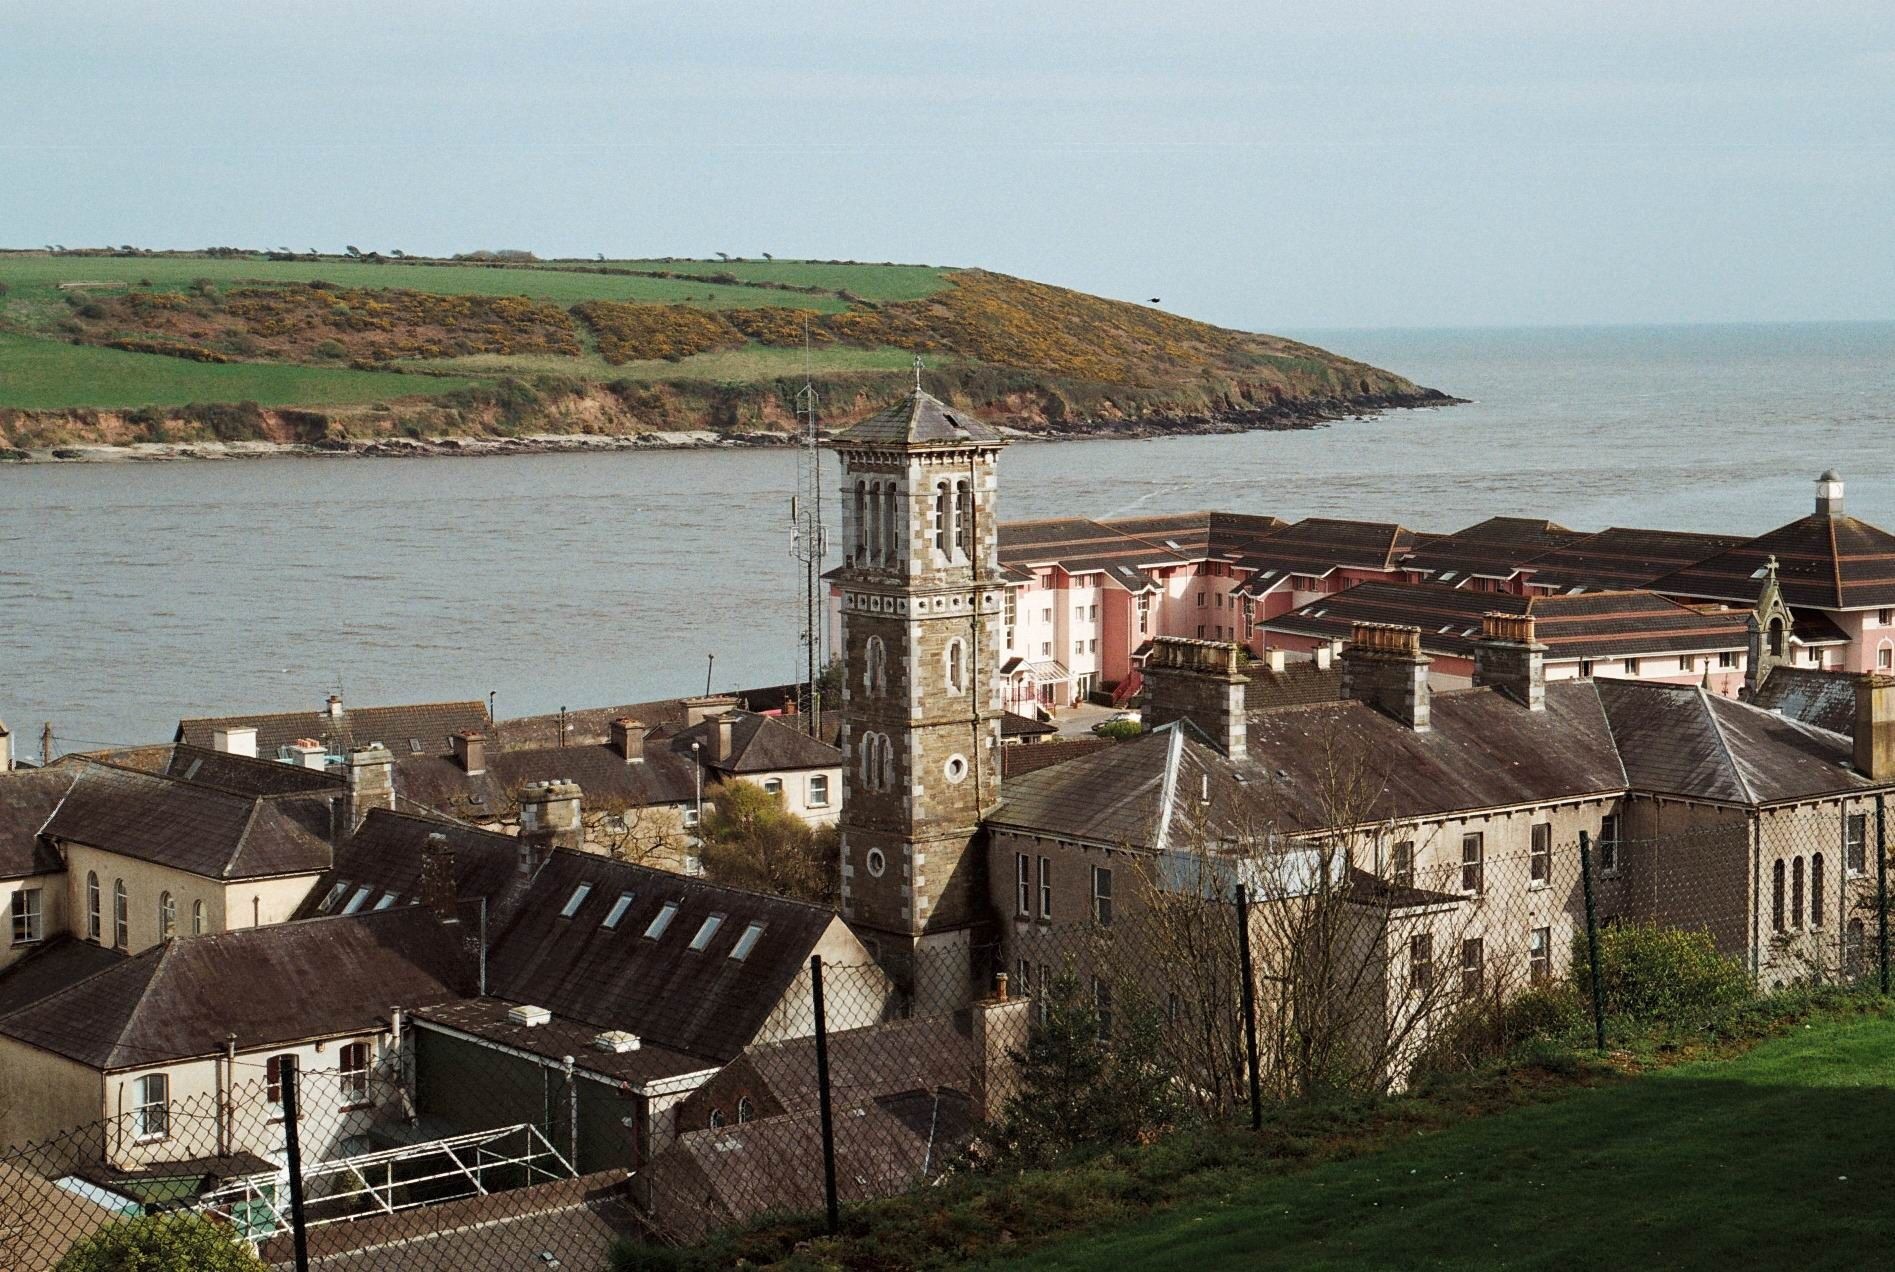 Revised Date for IRONMAN Ireland: 15.08.2021 - Youghal